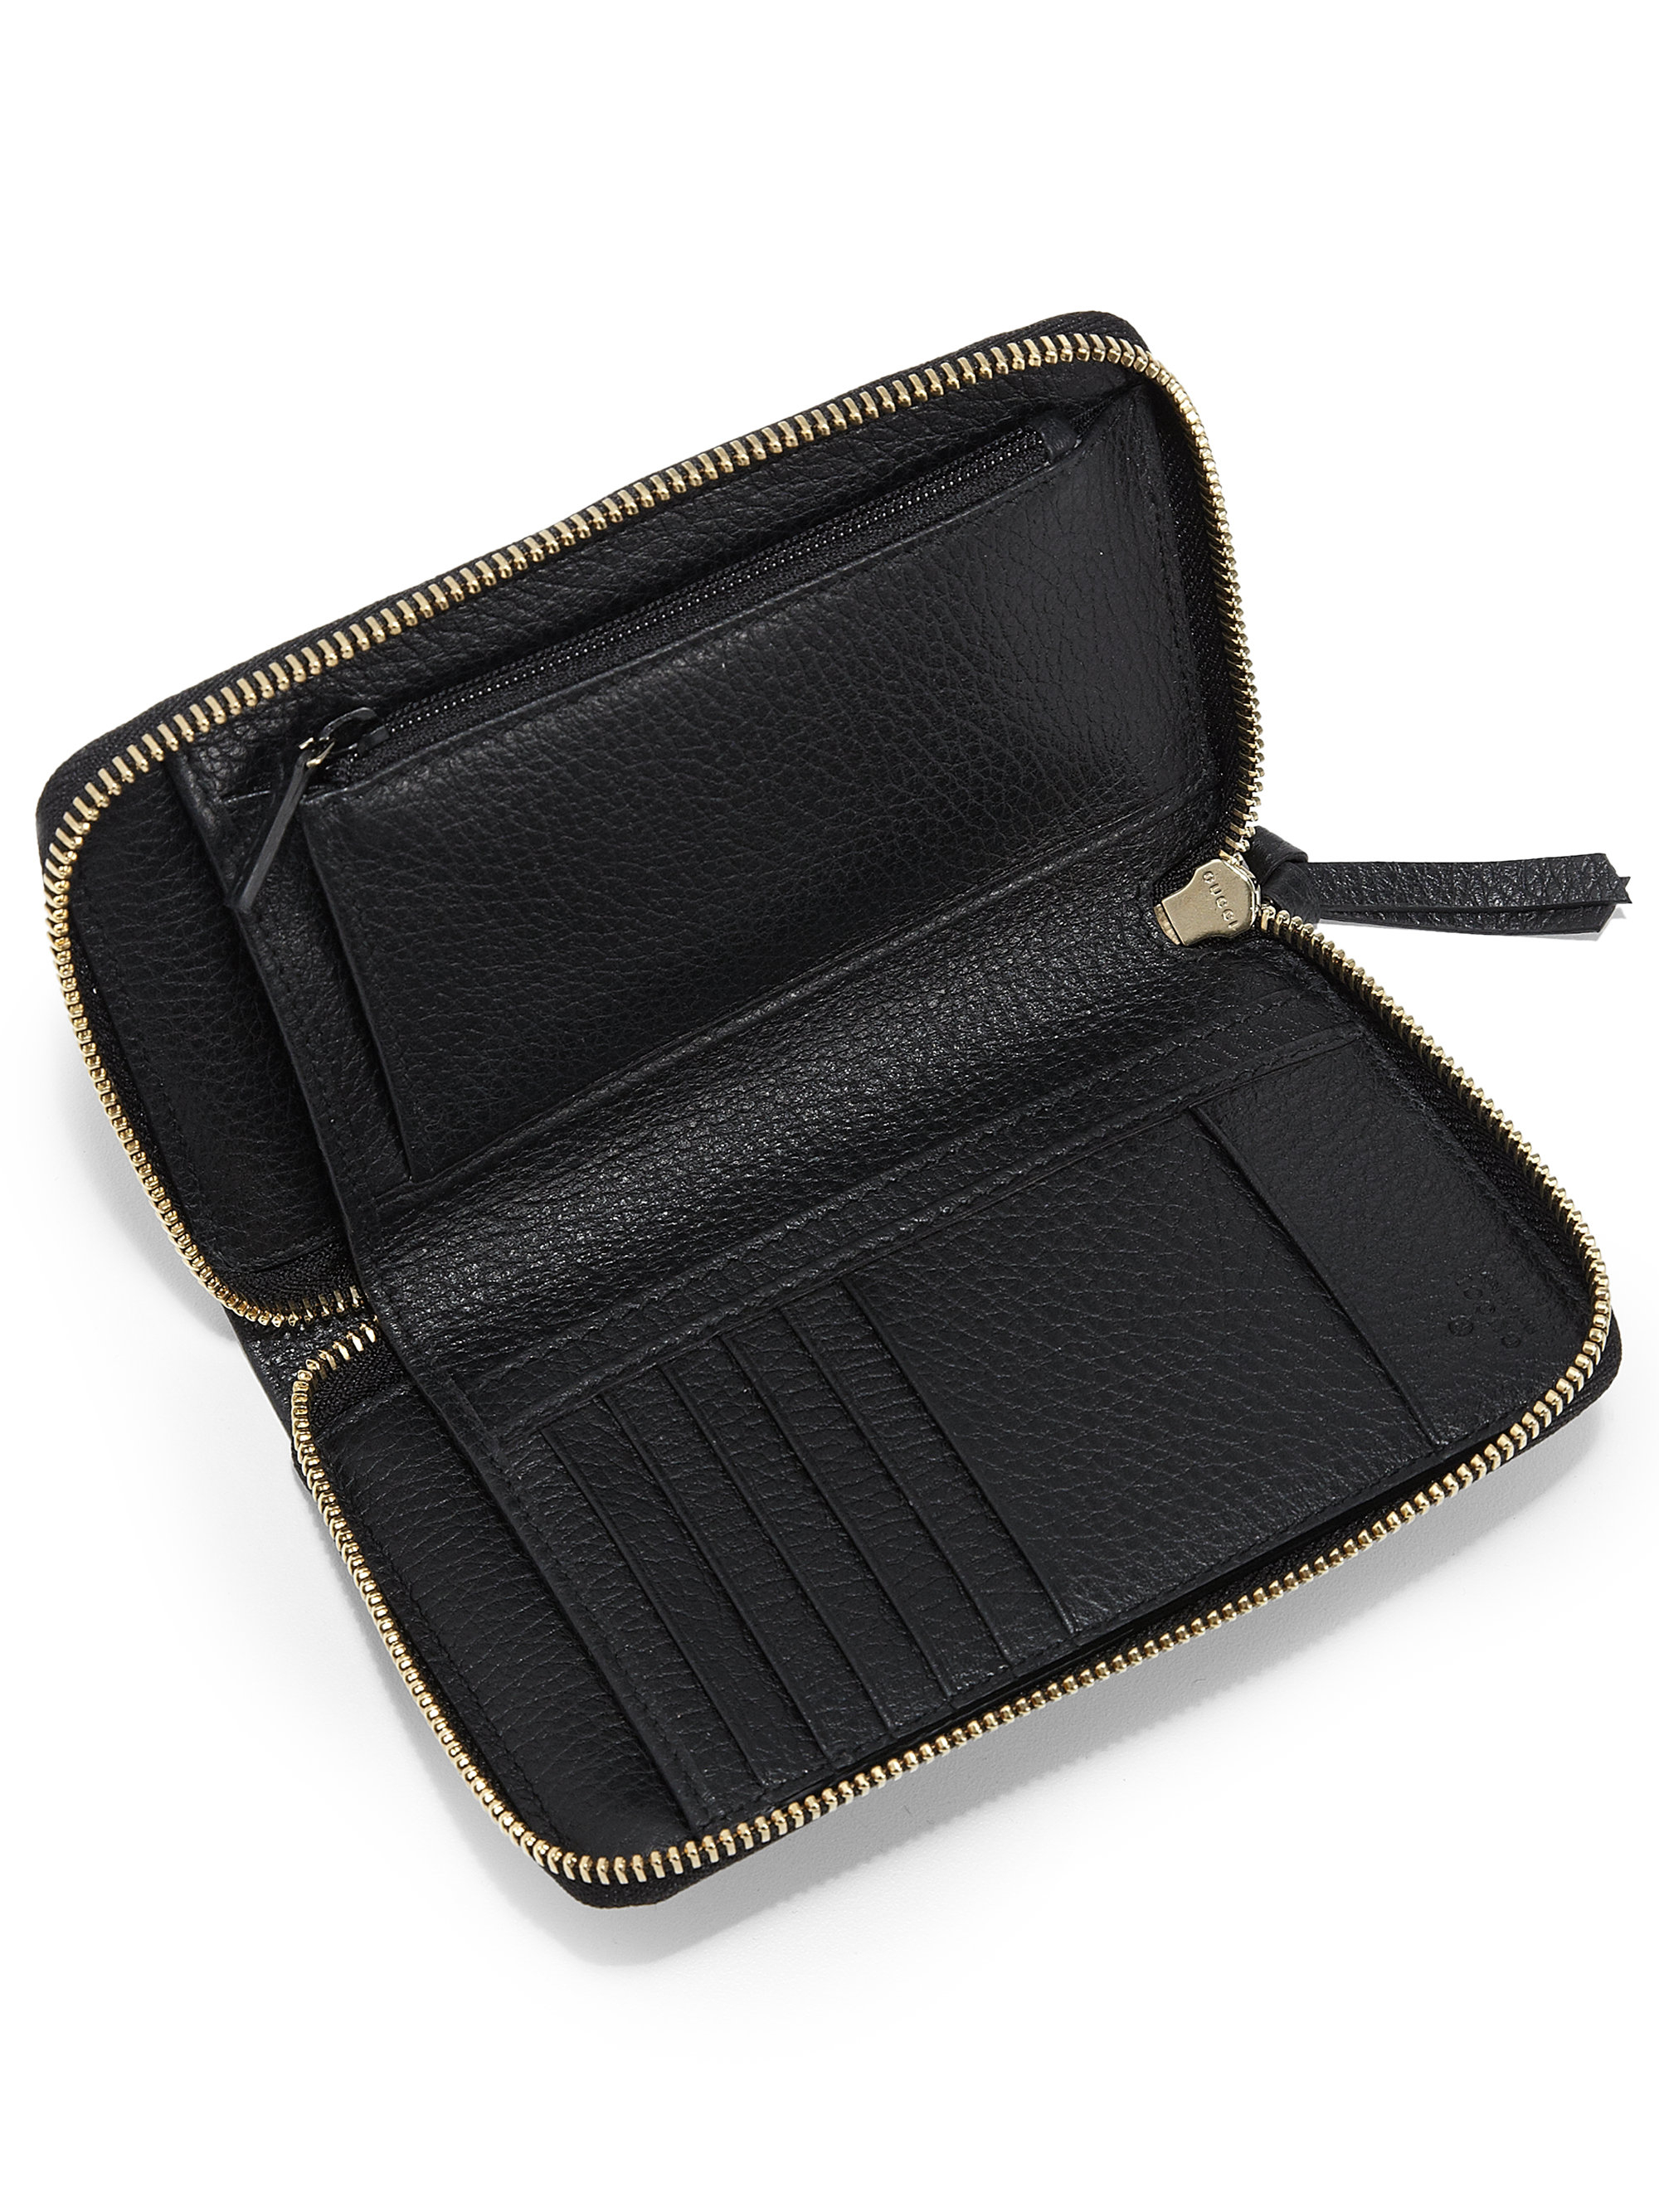 638bdb3cecebd Lyst - Gucci Swing Leather Zip-around Wallet in Black